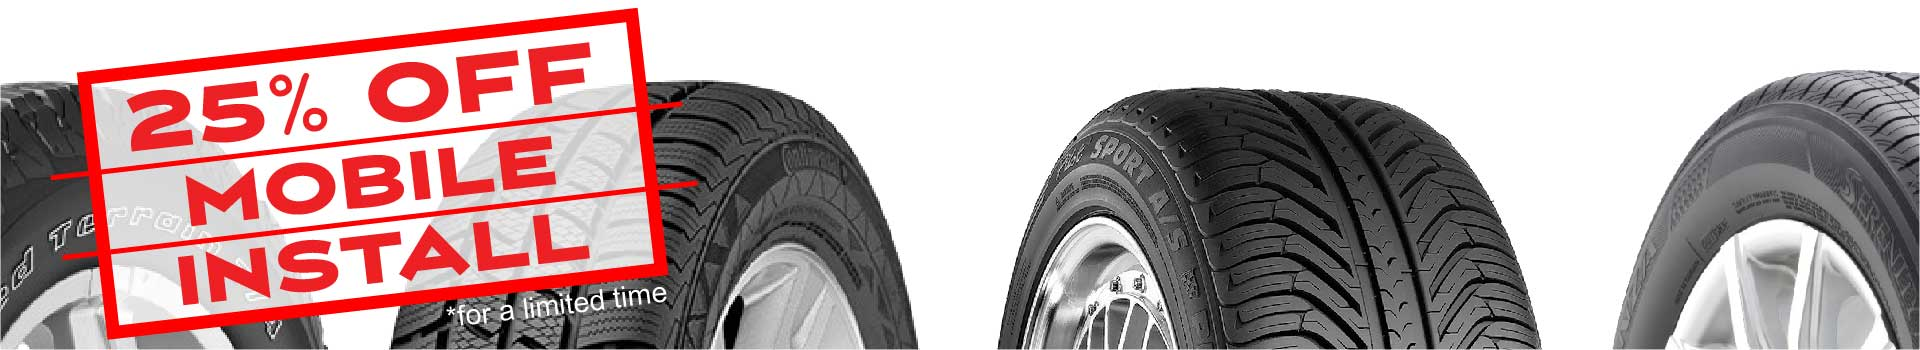 shop for tires and get 25% off mobile tire install with getTREAD